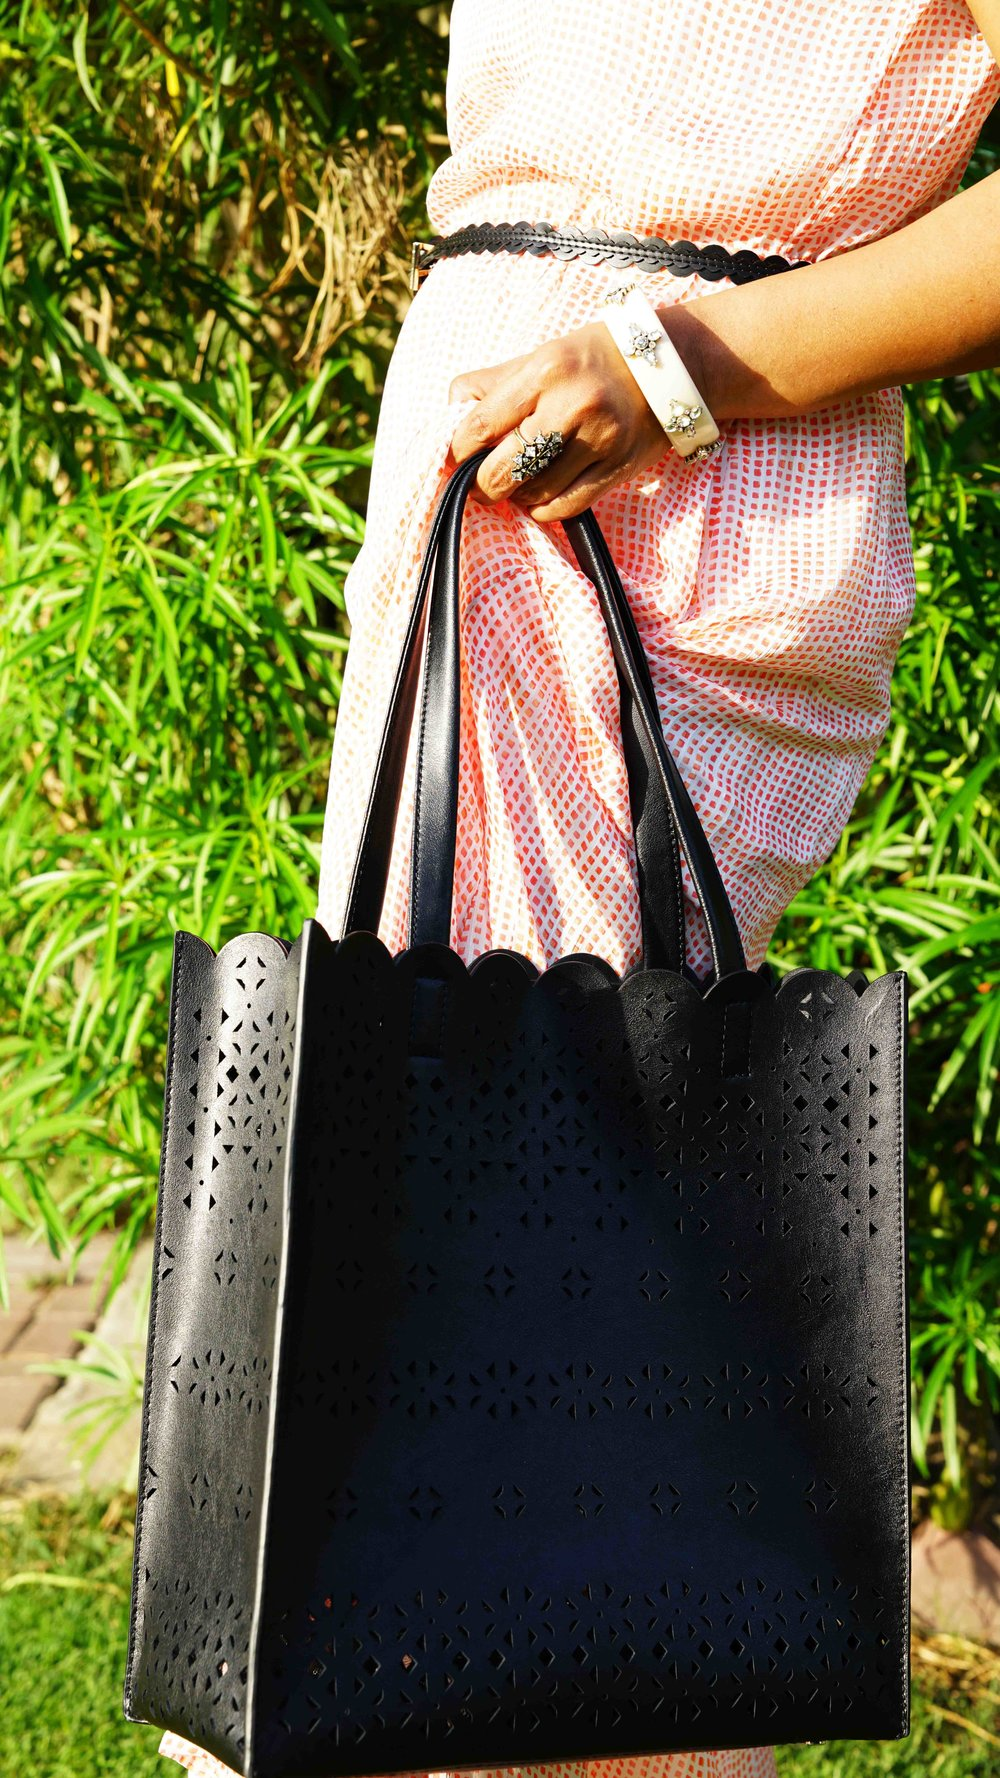 TIMELESS ELEGANCE OF A STRUCTURED LAZER CUT LEATHER TOTE PAIRED WITH CASUAL ACCESSORIES TO  ADD SOME WABANG TO THE DAY.